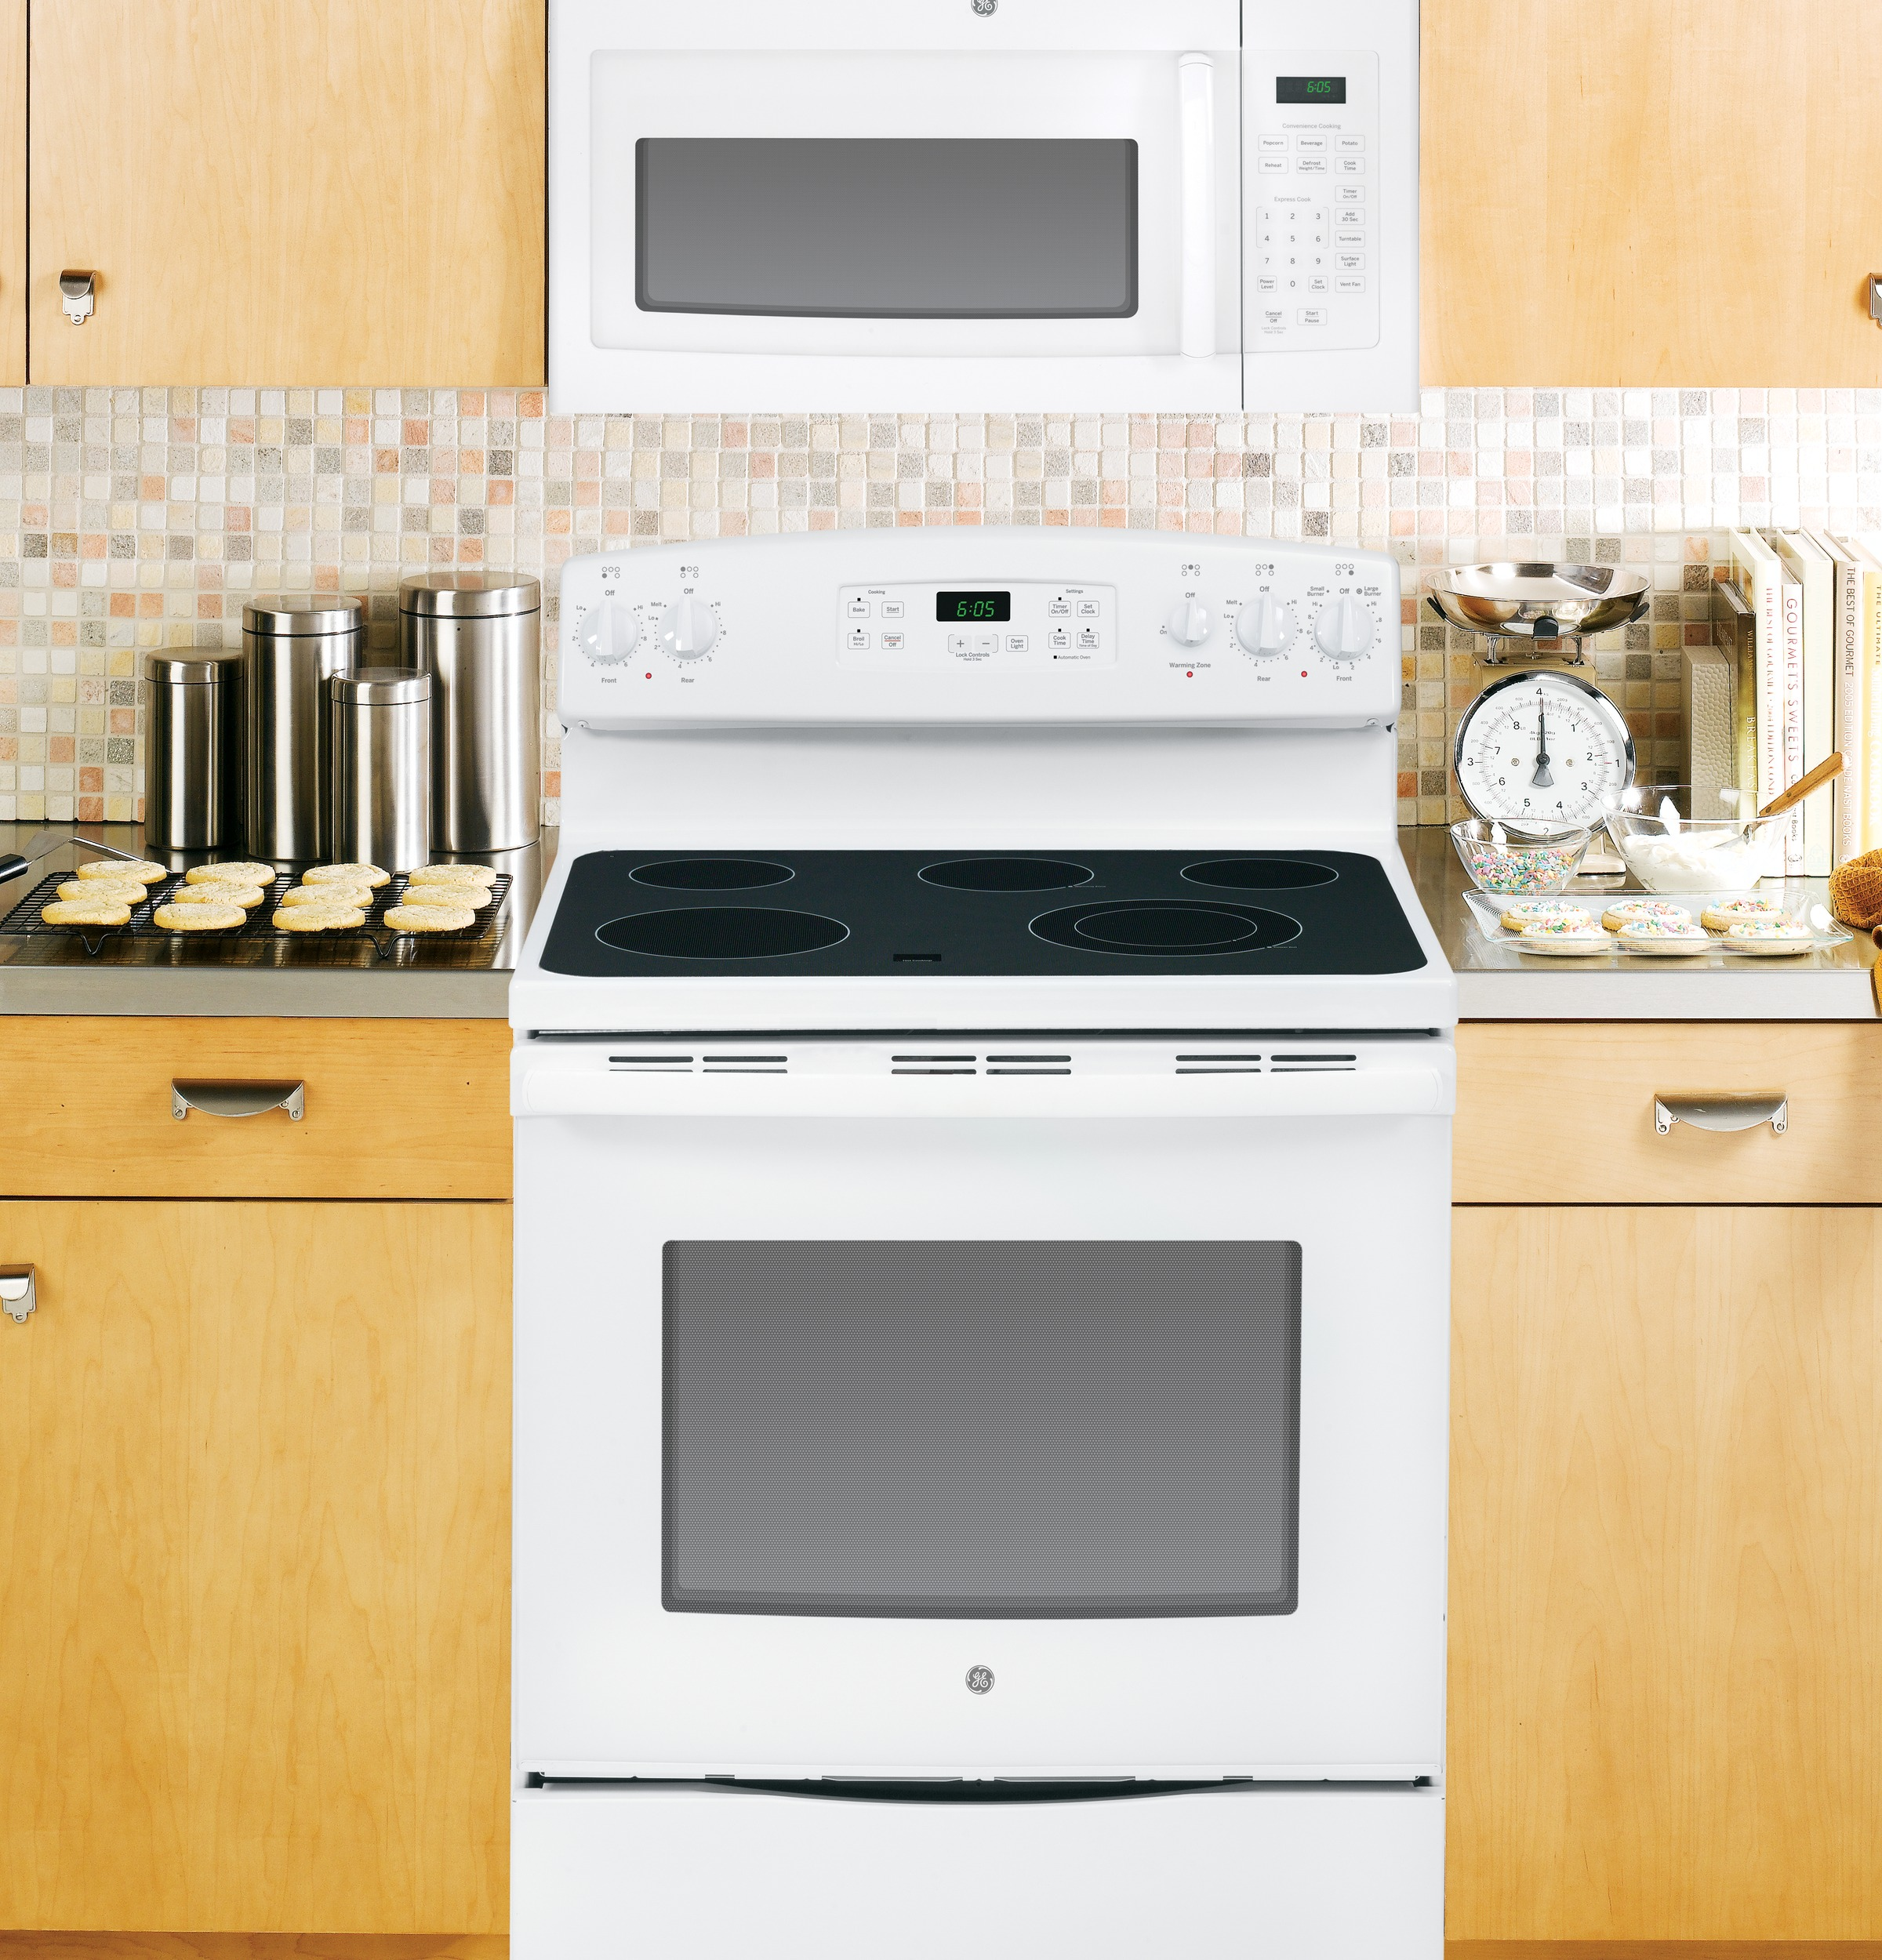 Installation of ge microwaves over the range -  Product Image Product Image